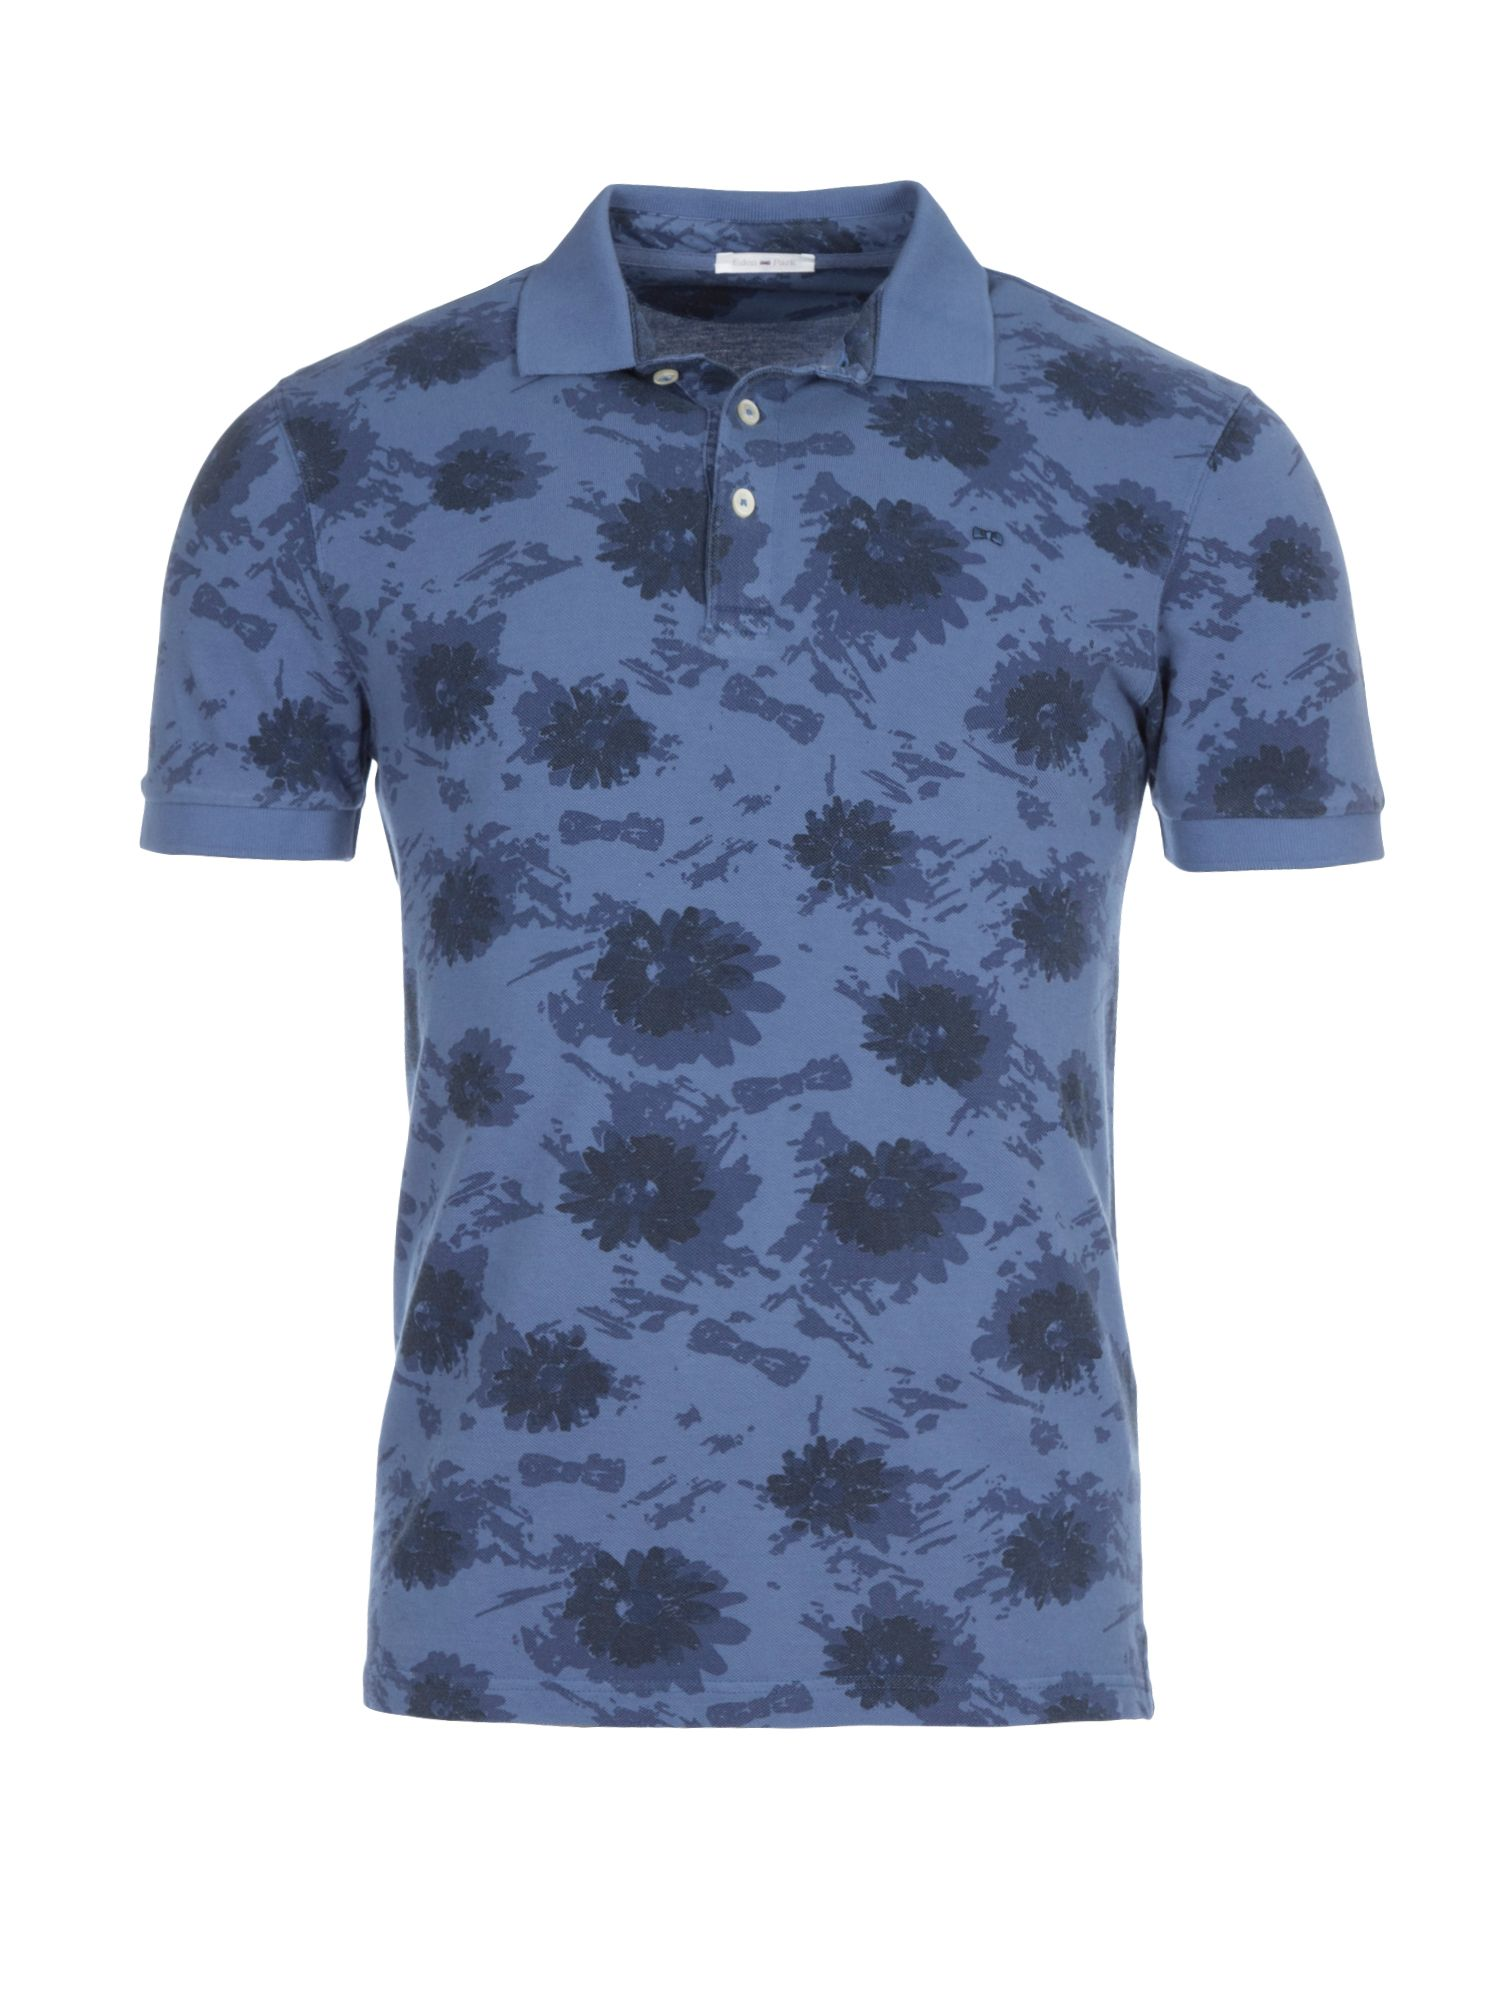 Men's Eden Park Floral Cotton Polo Shirt, Blue